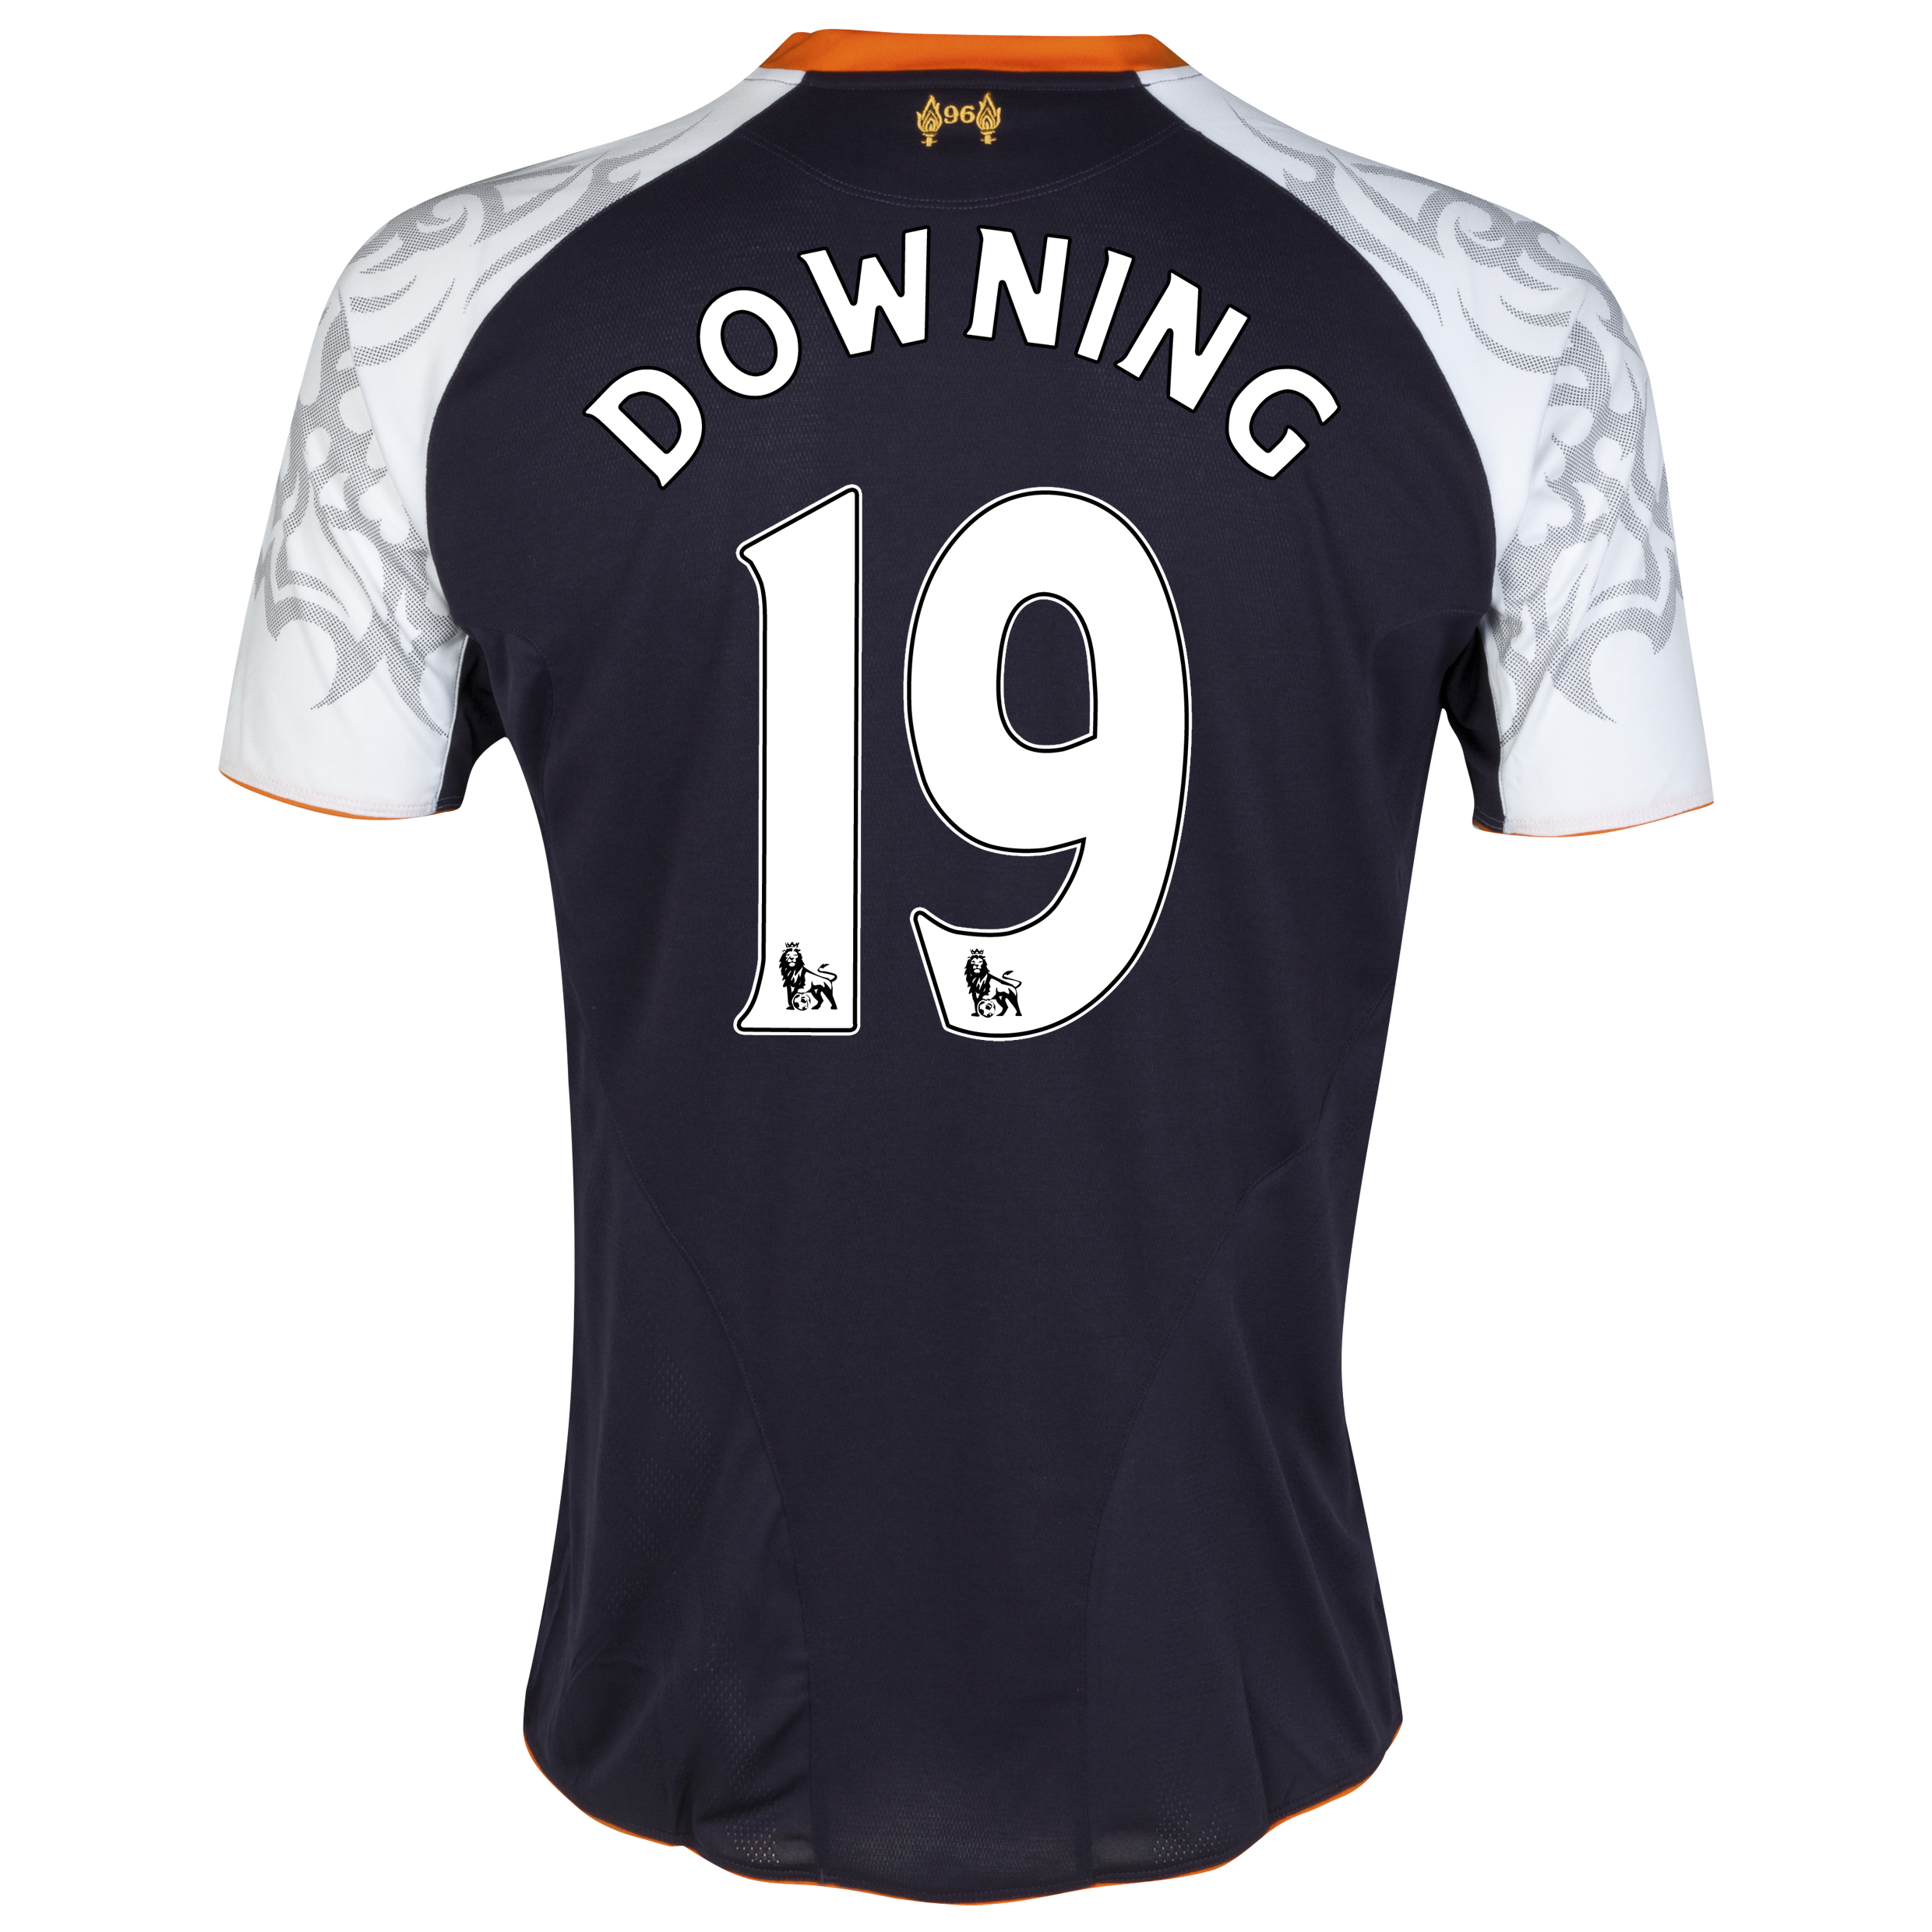 Liverpool Third Shirt 2012/13 - Kids with Downing 19 printing